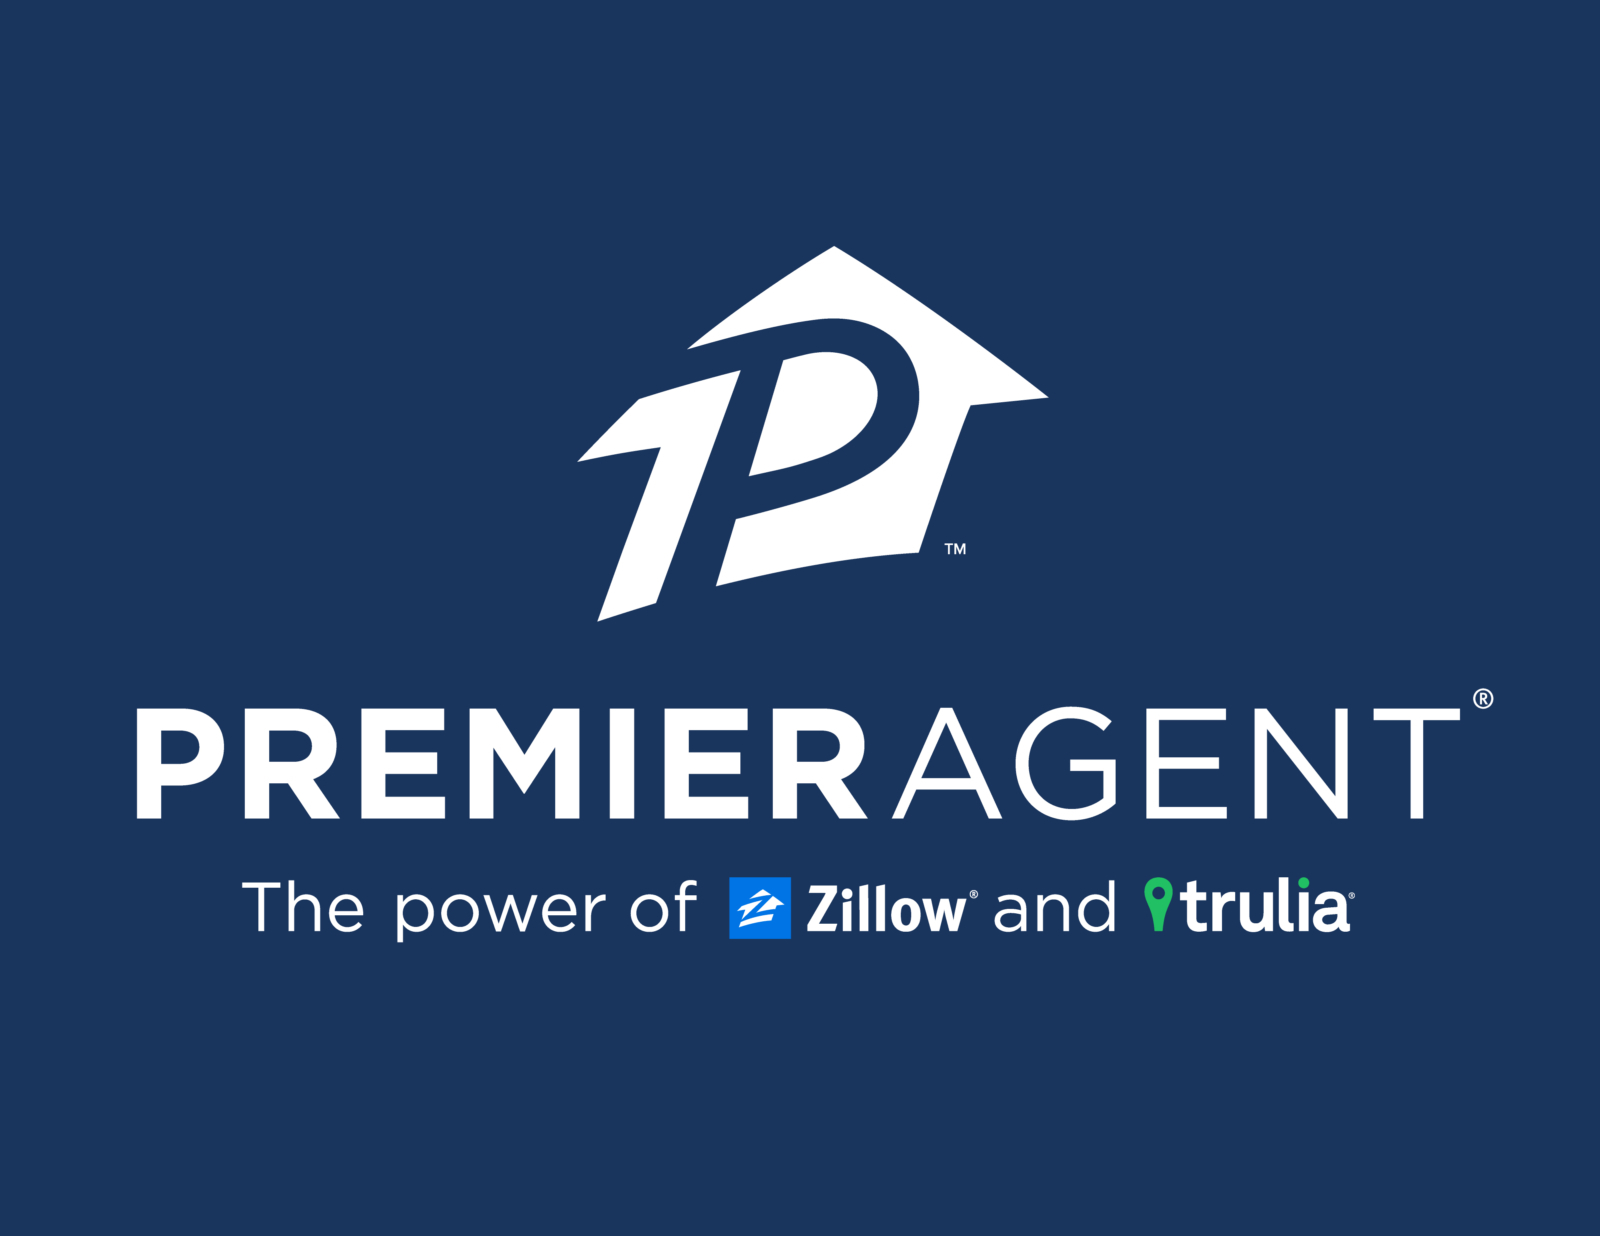 PremierAgenct-Zillow-and-Trulia.jpg